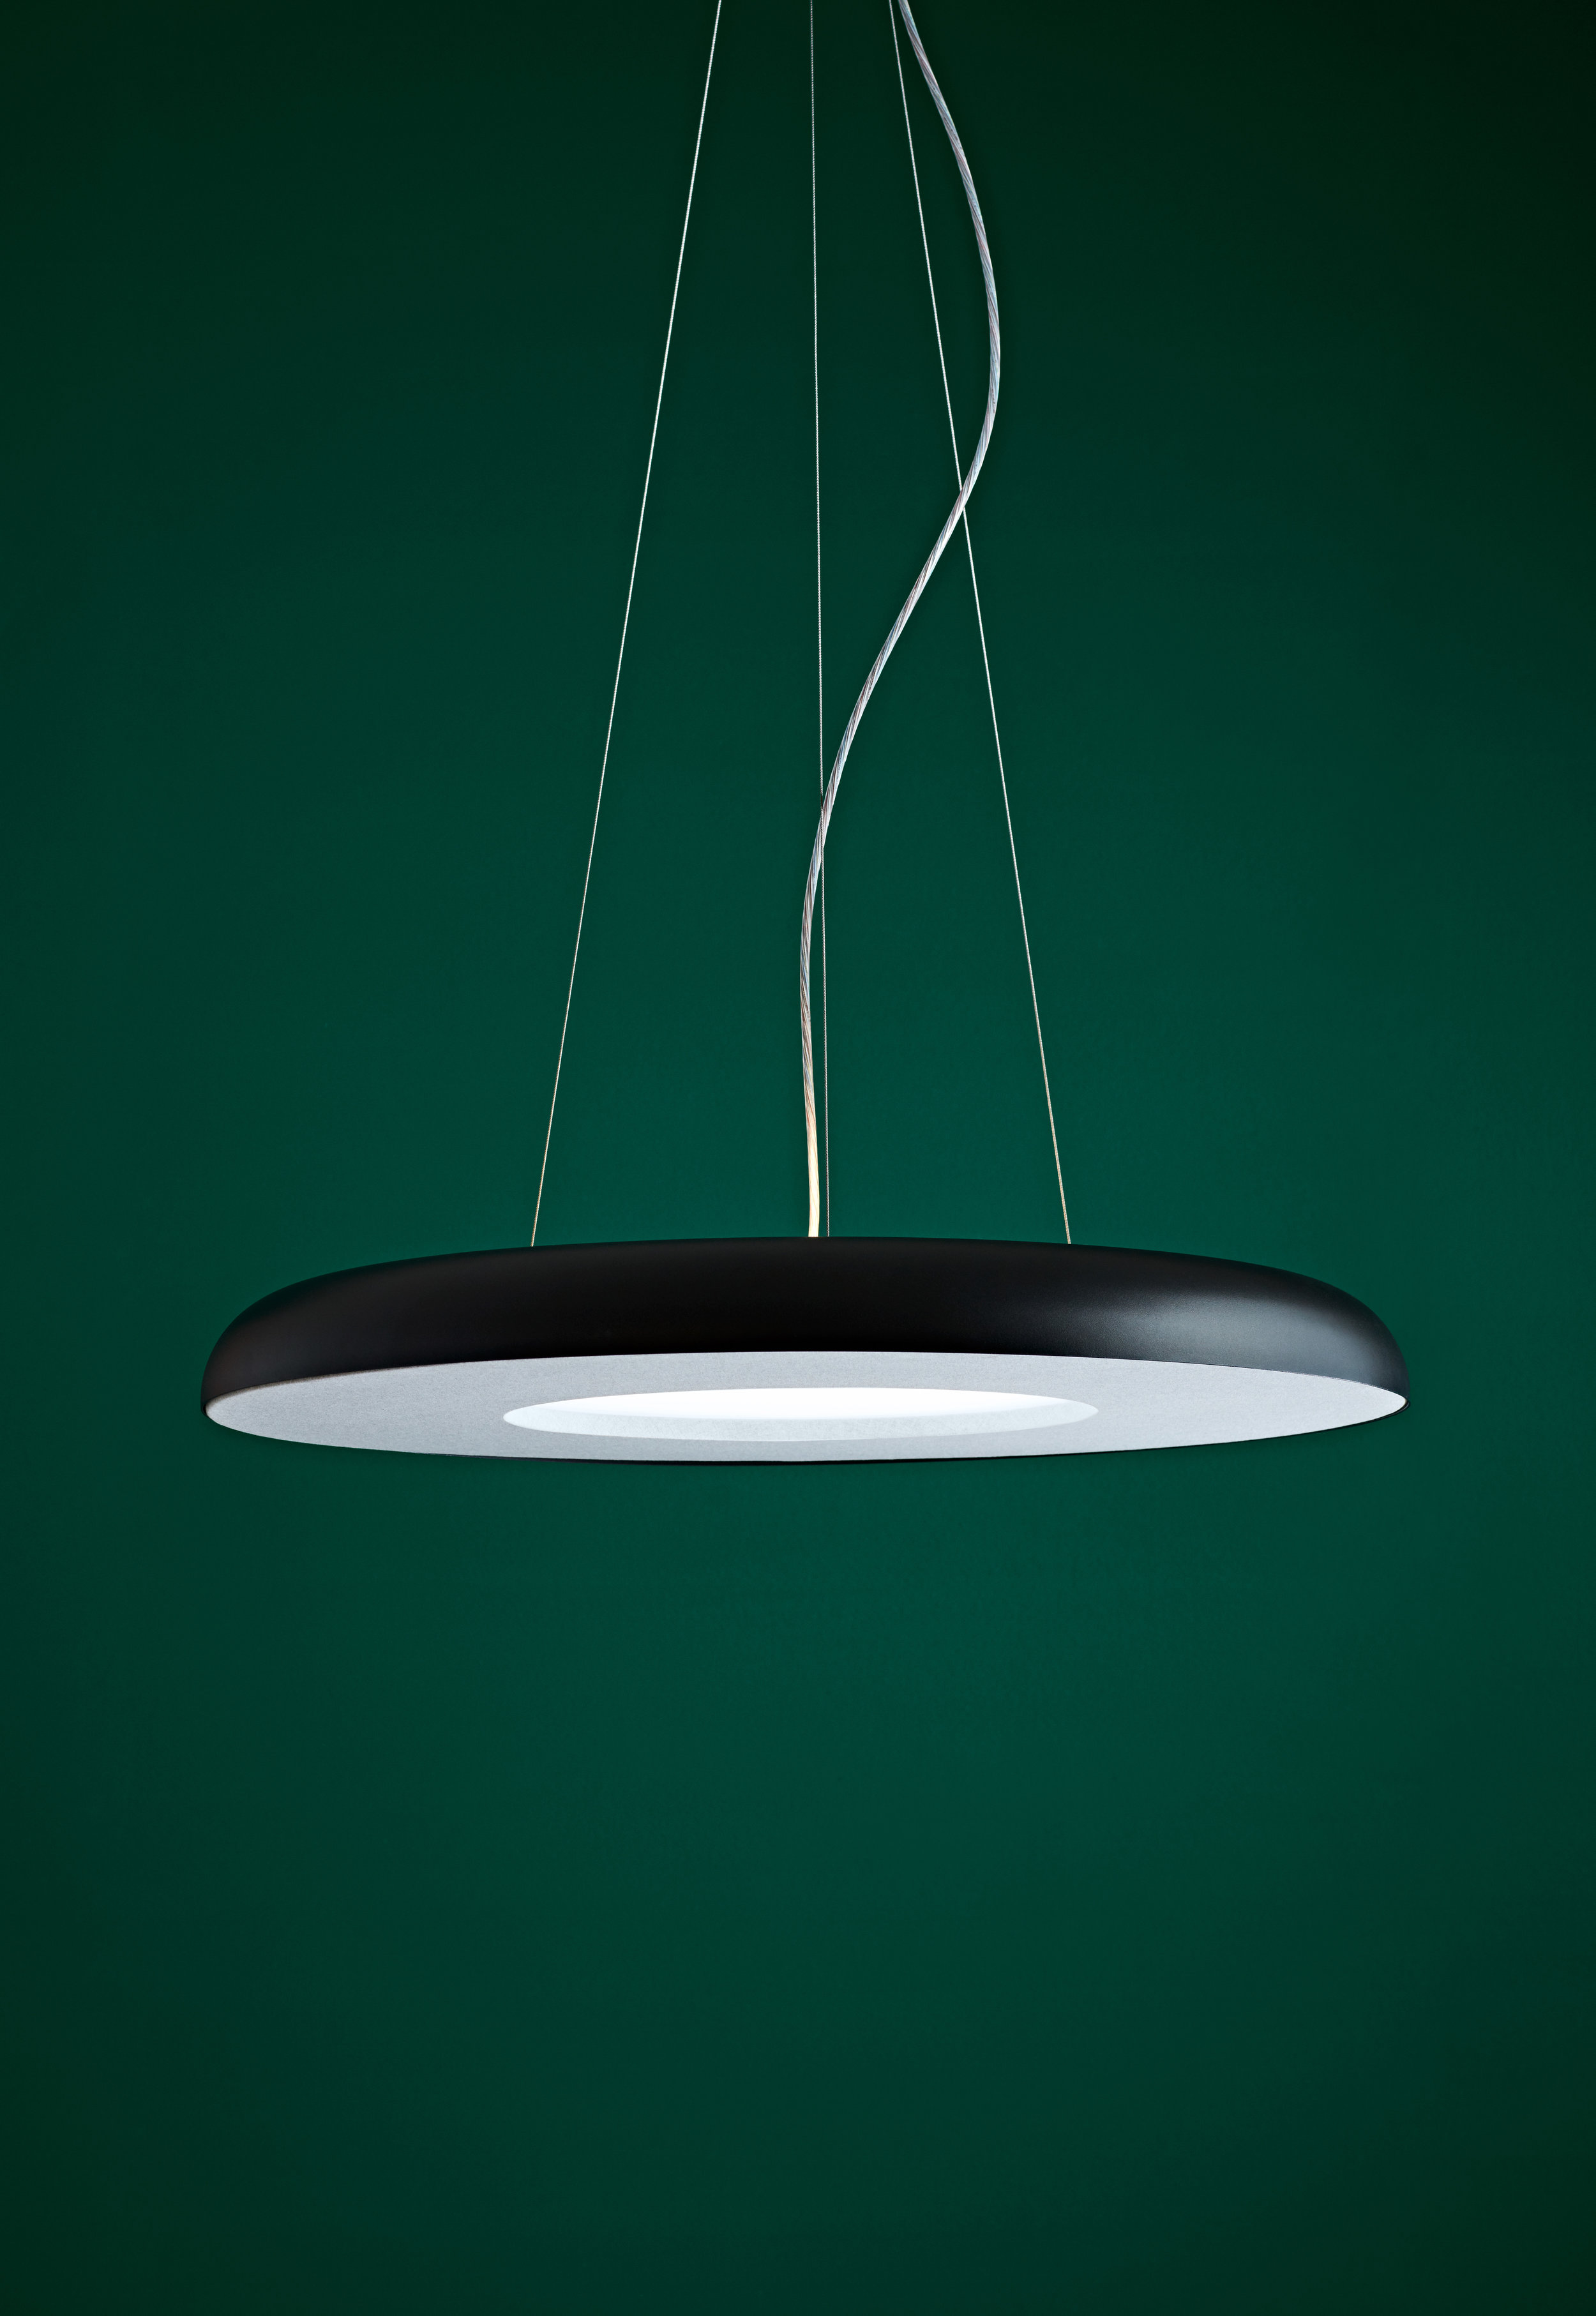 ISM Objects_Teamwork Charcoal Pendant_Photo credit Mike Baker, Styling Heather Nette King_Lifestyle 04.jpg